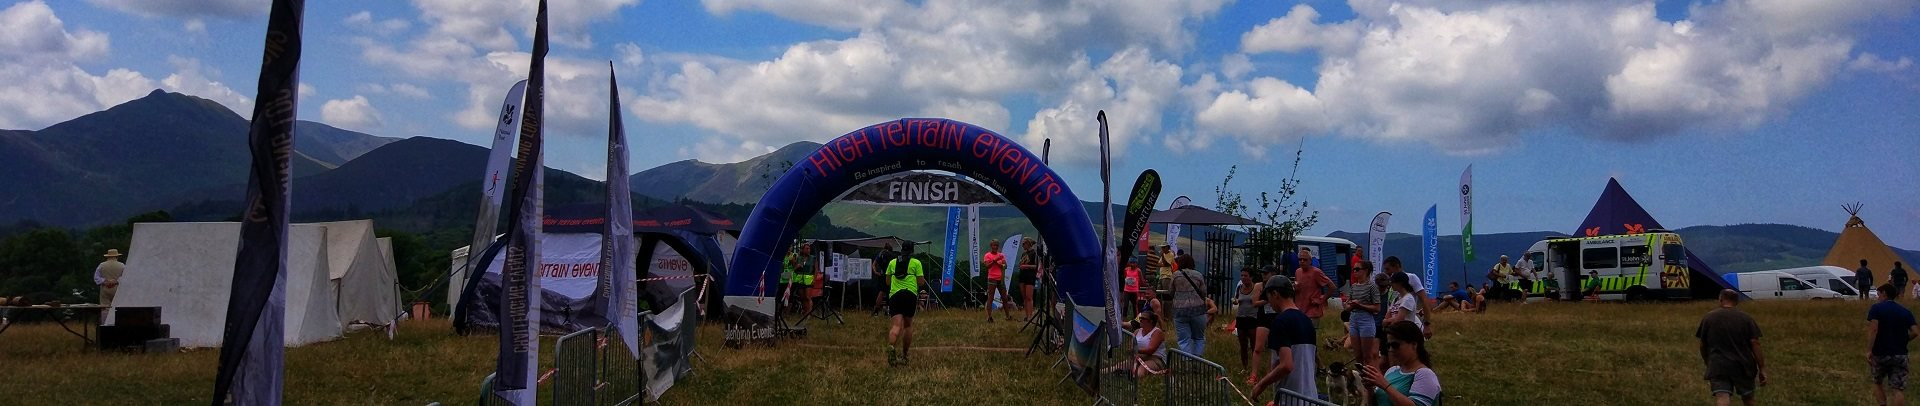 Borrowdale Trail Races 2018